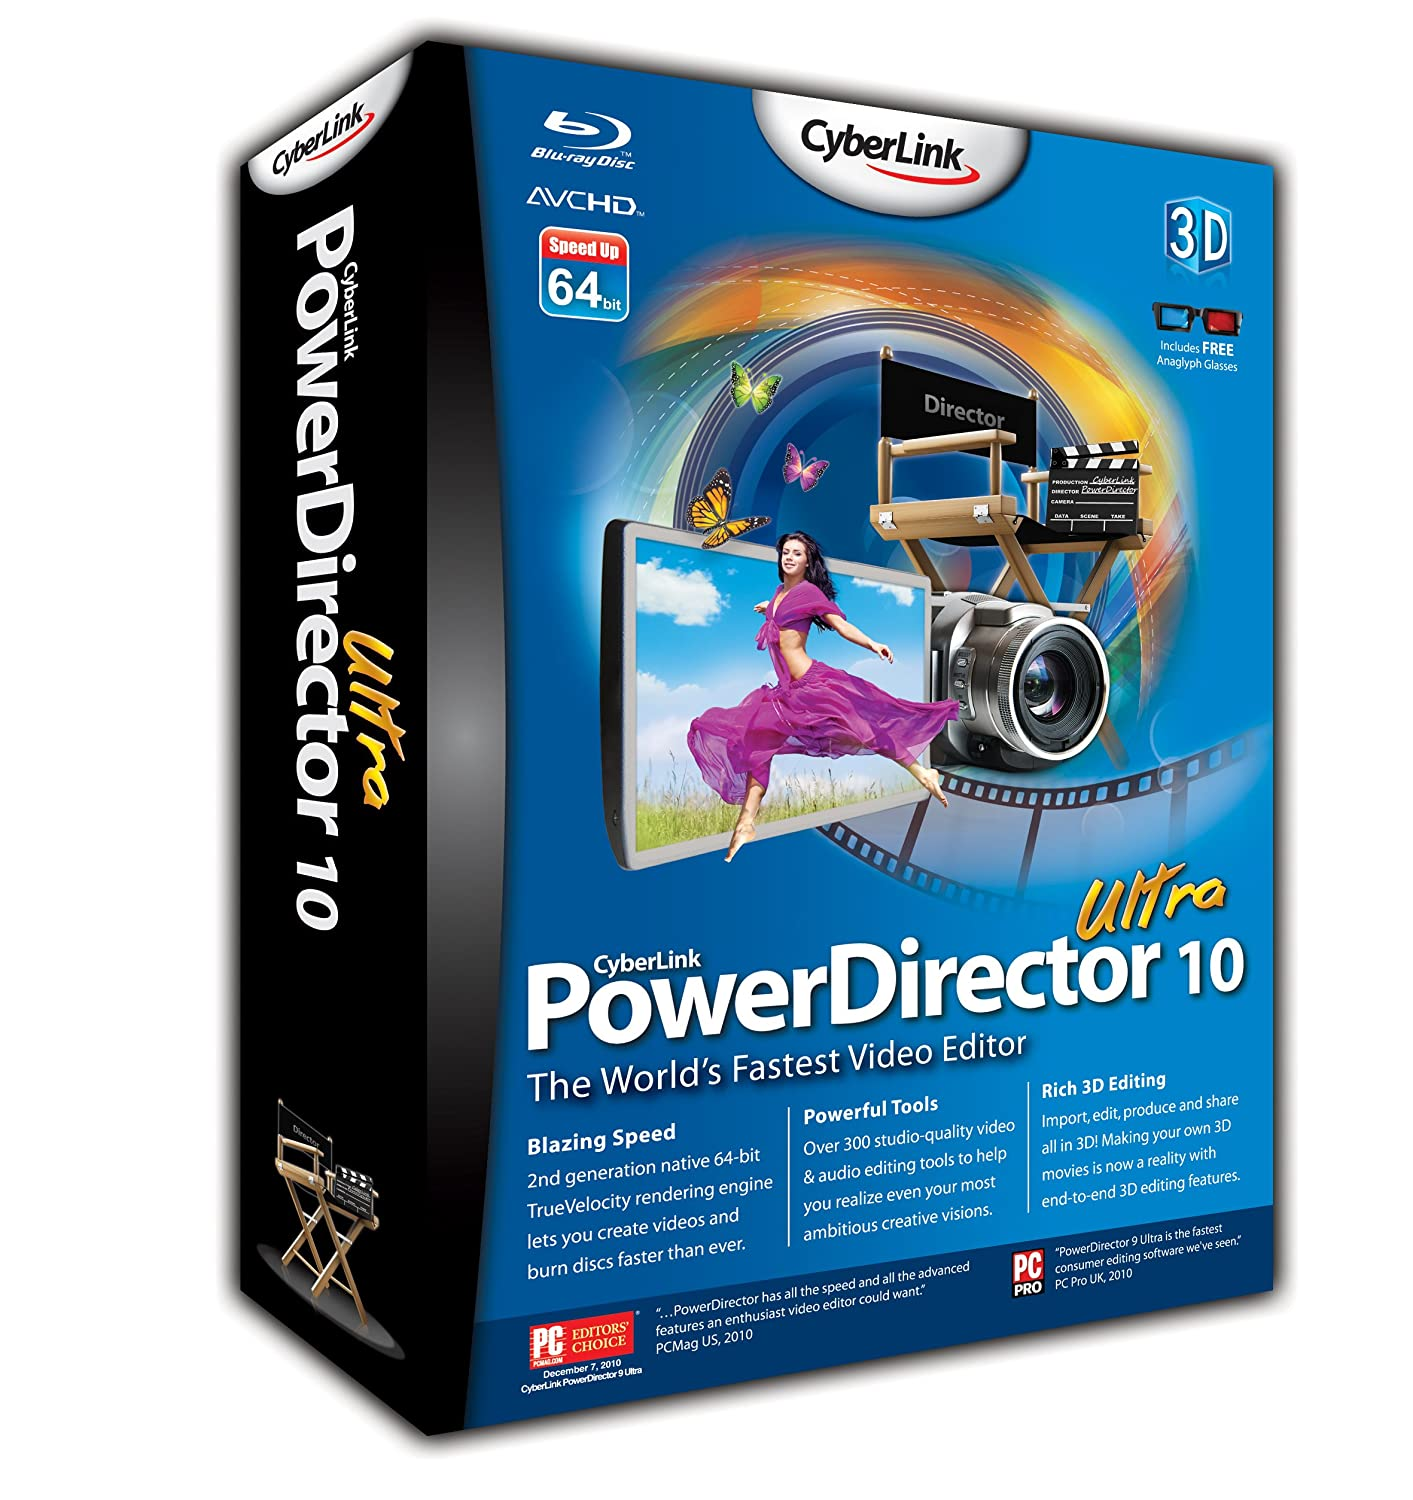 cyberlink powerdirector 9 ultra free download full version